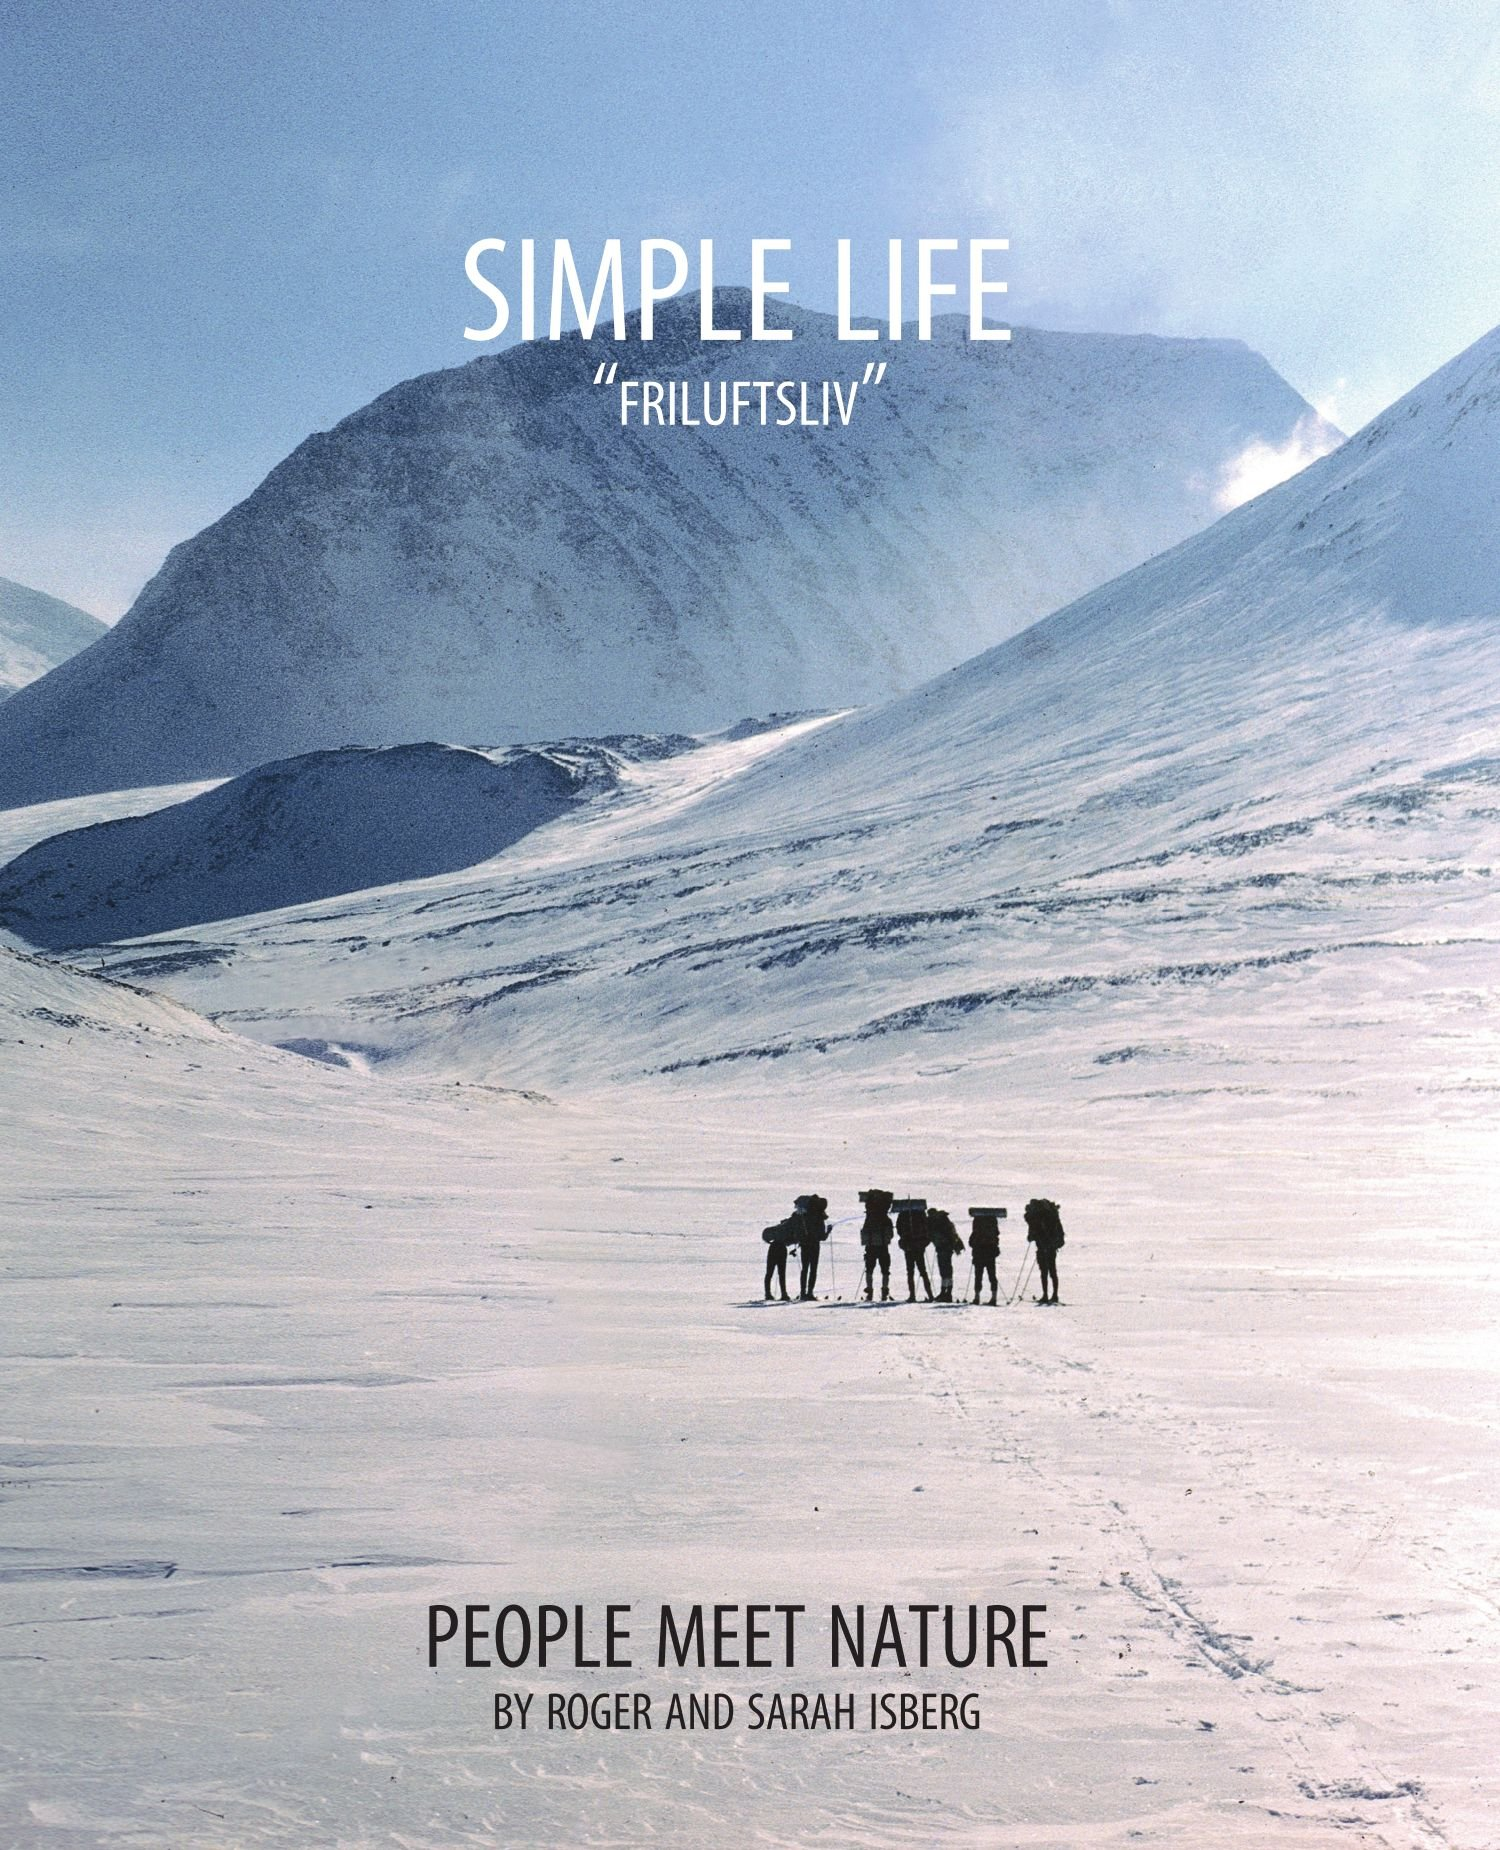 Simple life friluftsliv people meet nature roger isberg sarah simple life friluftsliv people meet nature roger isberg sarah isberg 9781412064156 amazon books thecheapjerseys Images